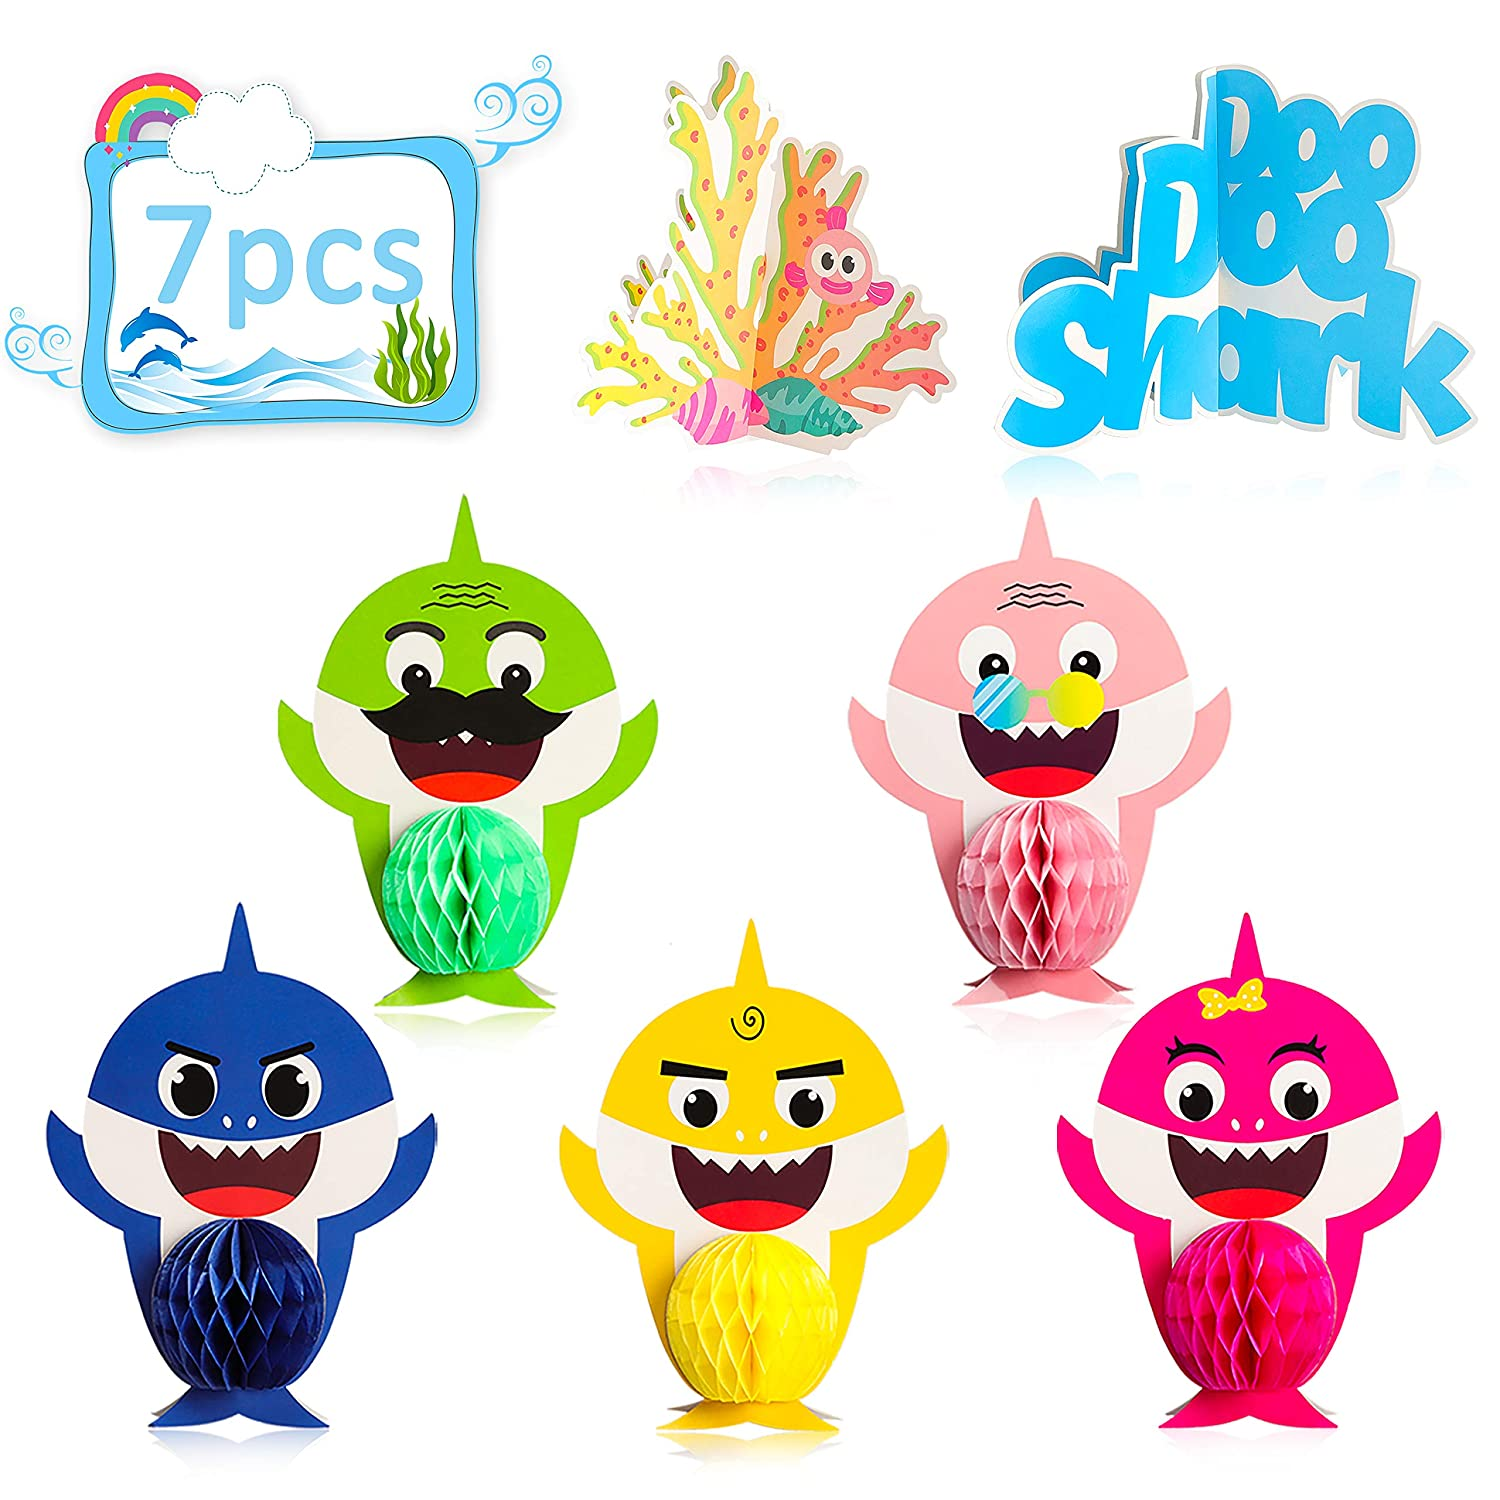 Ticiaga Little Shark Party Favors, 7pcs Doo Doo Shark Honeycomb Centerpieces Table Topper for Birthday Party Decoration, Double Sided Little Shark ...